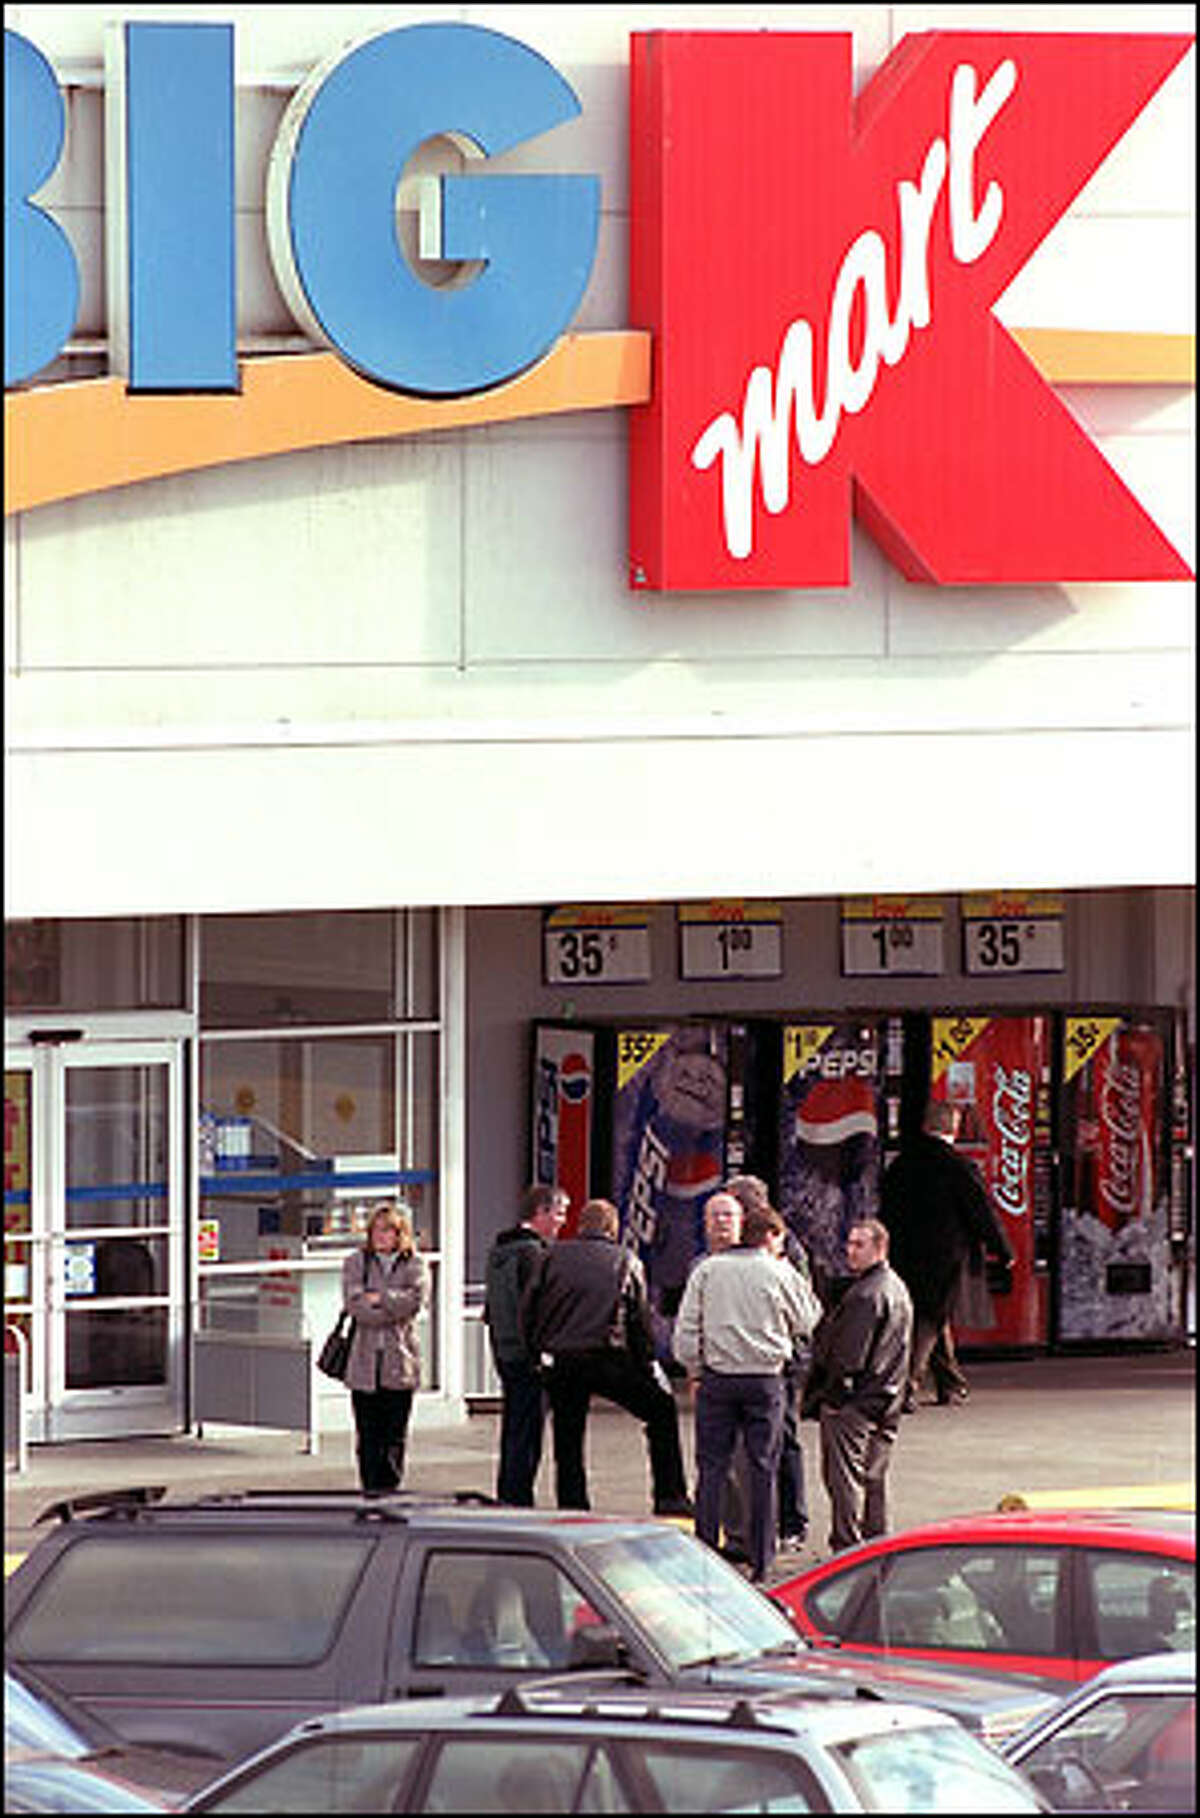 Among Kmart Corp.'s stores in Western Washington is this one in the 13000 block of Aurora Avenue North in Seattle.